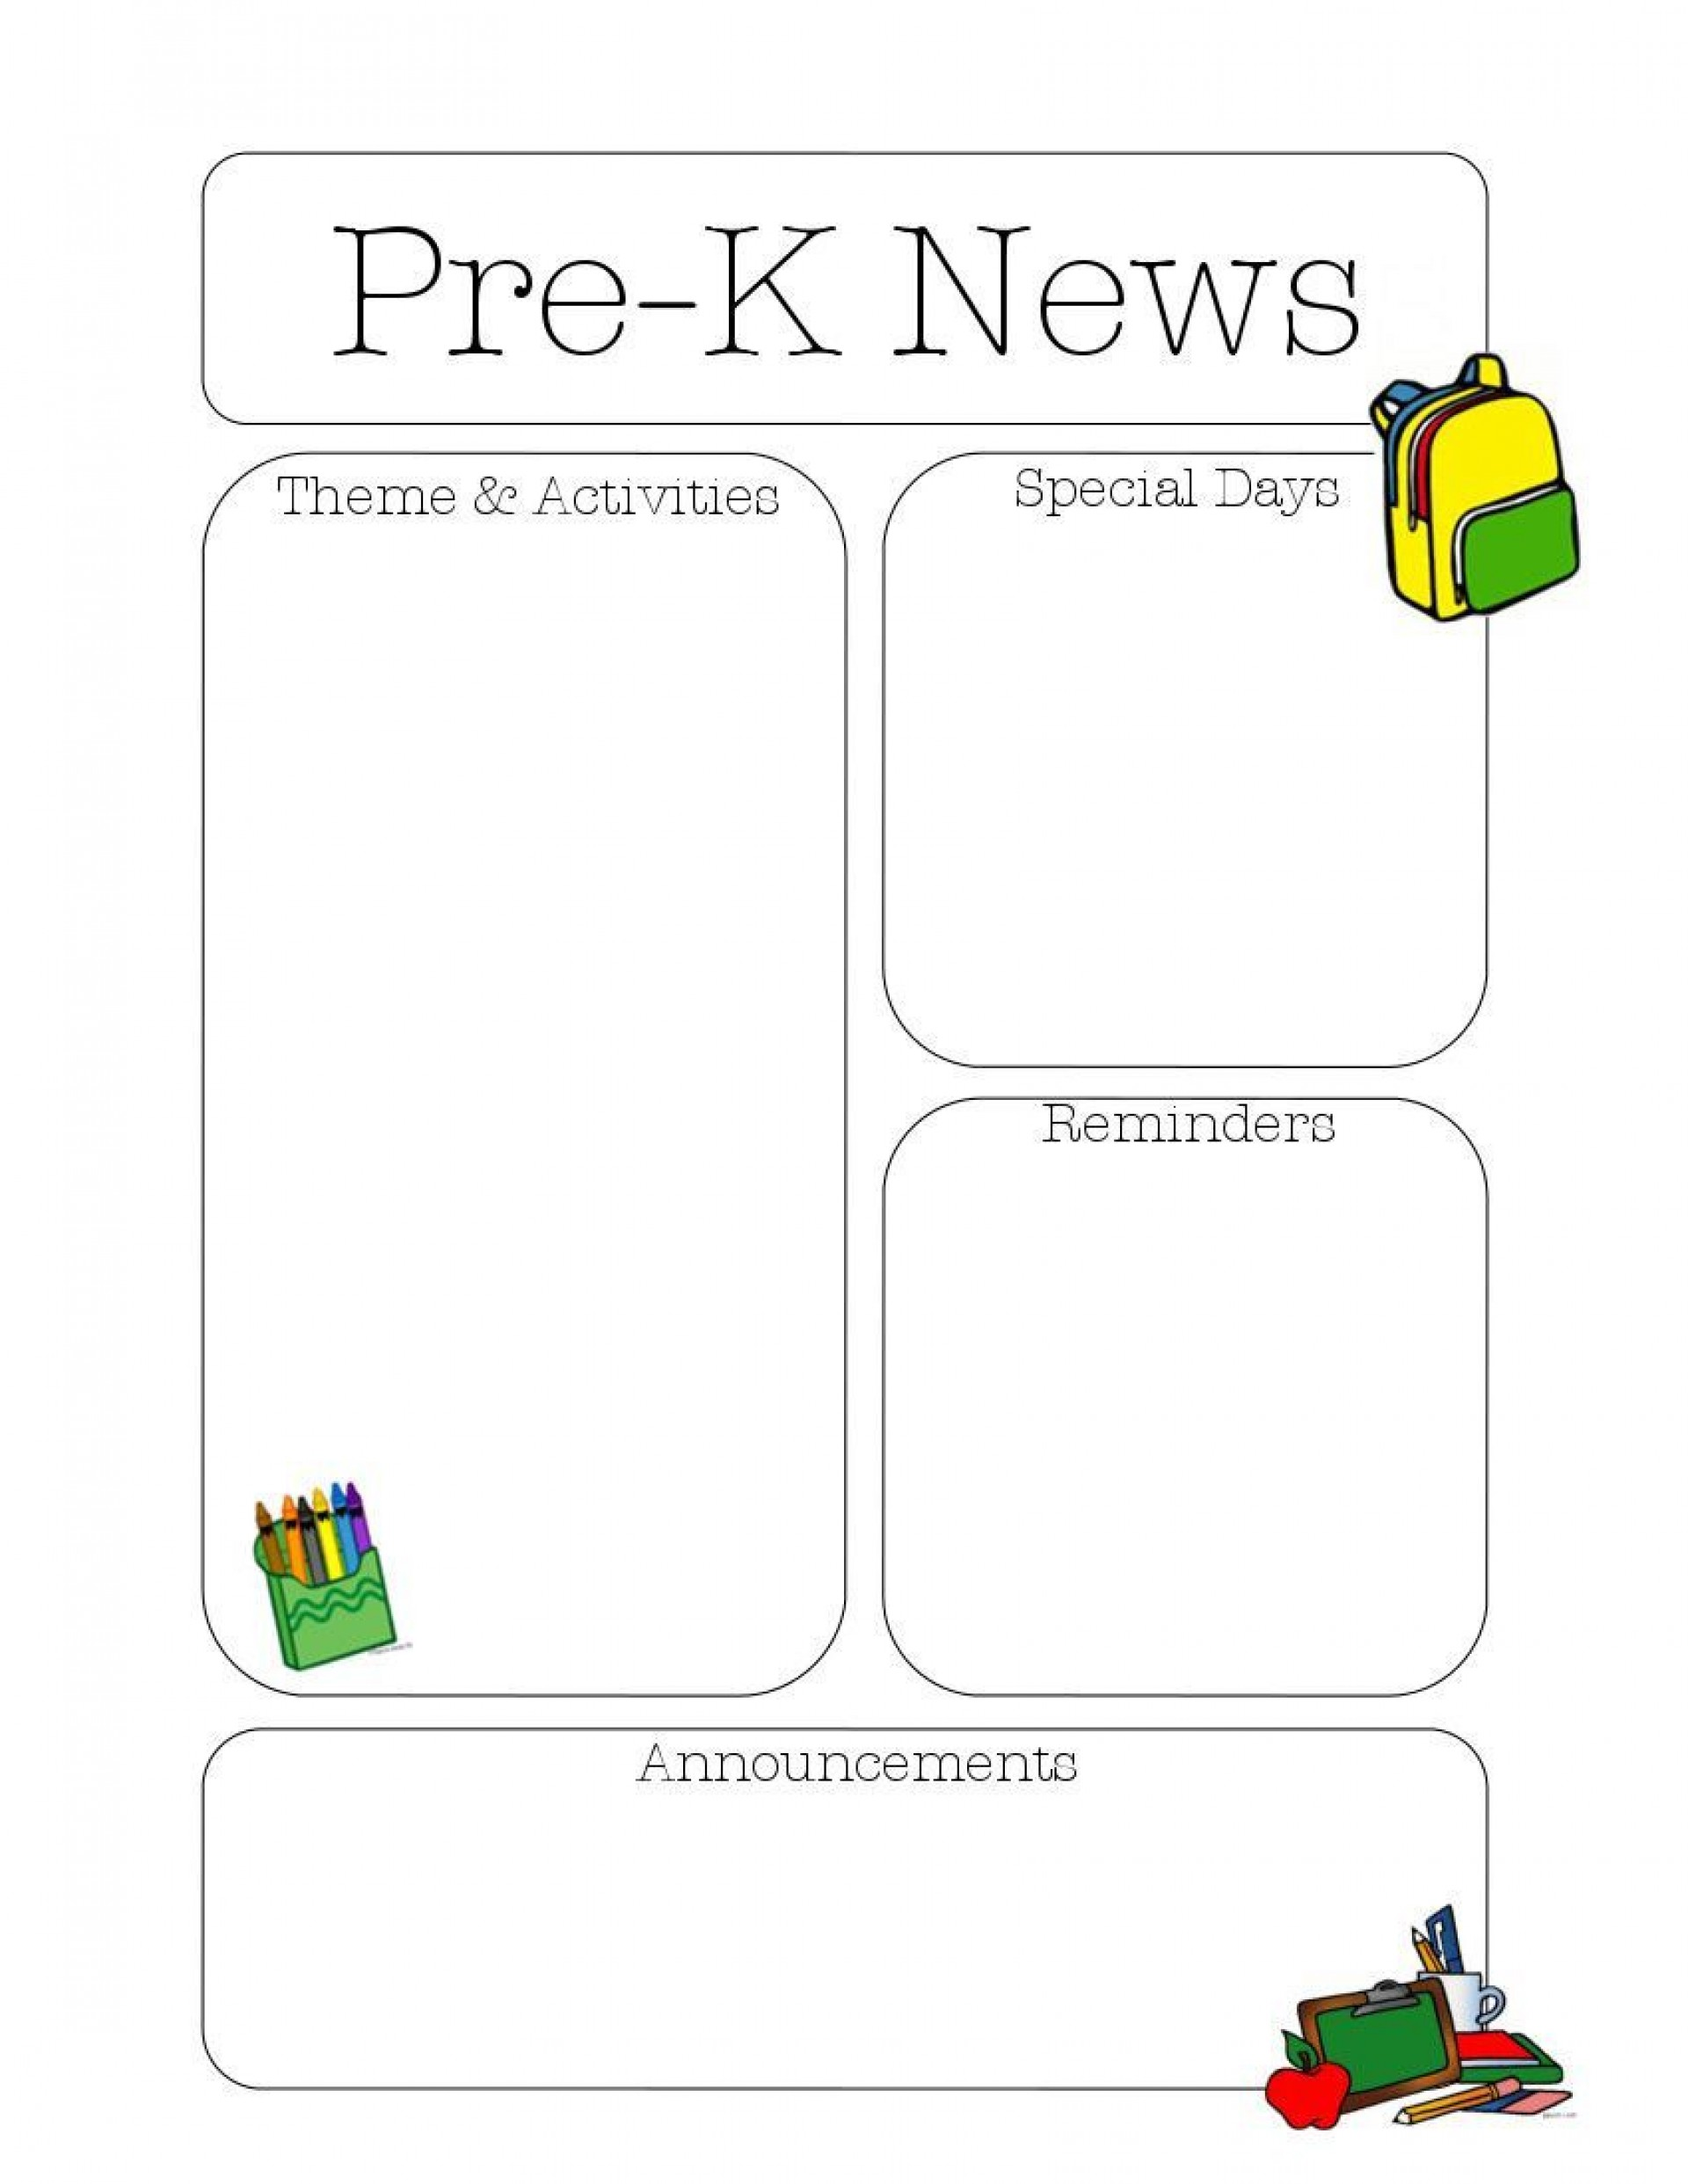 004 Sensational Pre K Newsletter Template Picture  Templates Free Printable Classroom1920